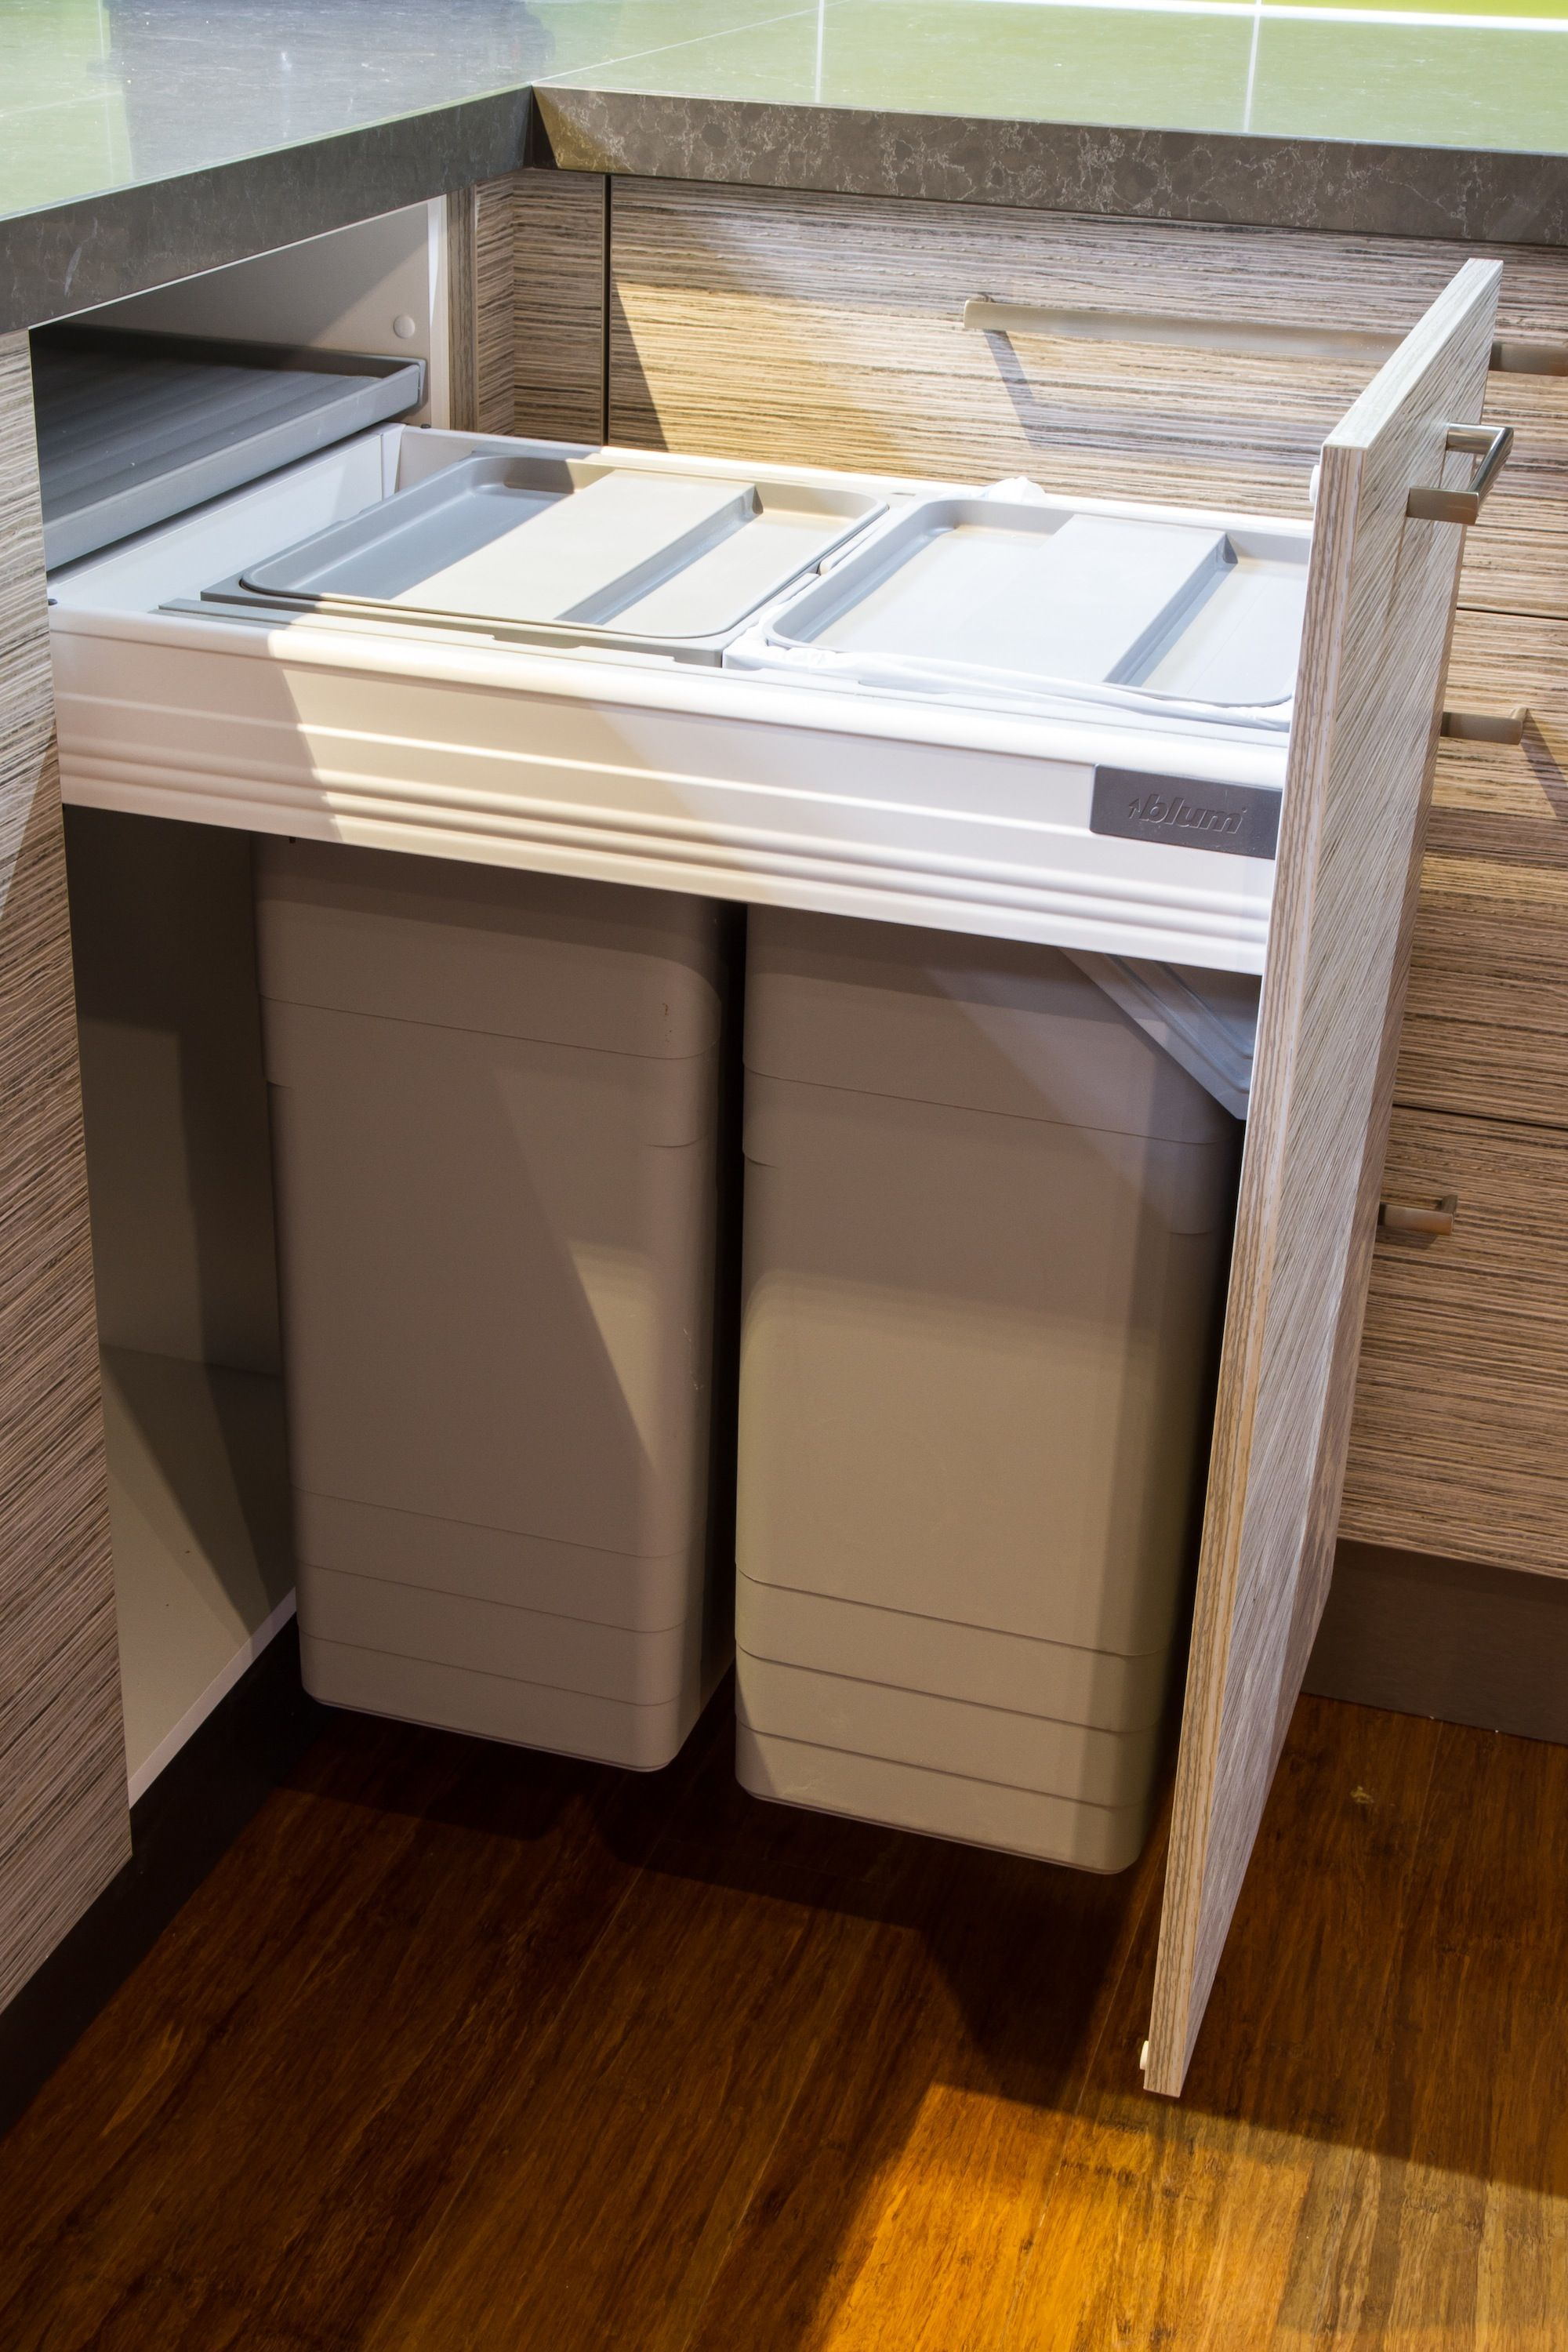 blum kitchen bins big tiles bin drawer small contemporary hafele runner www thekitchendesigncentre com au